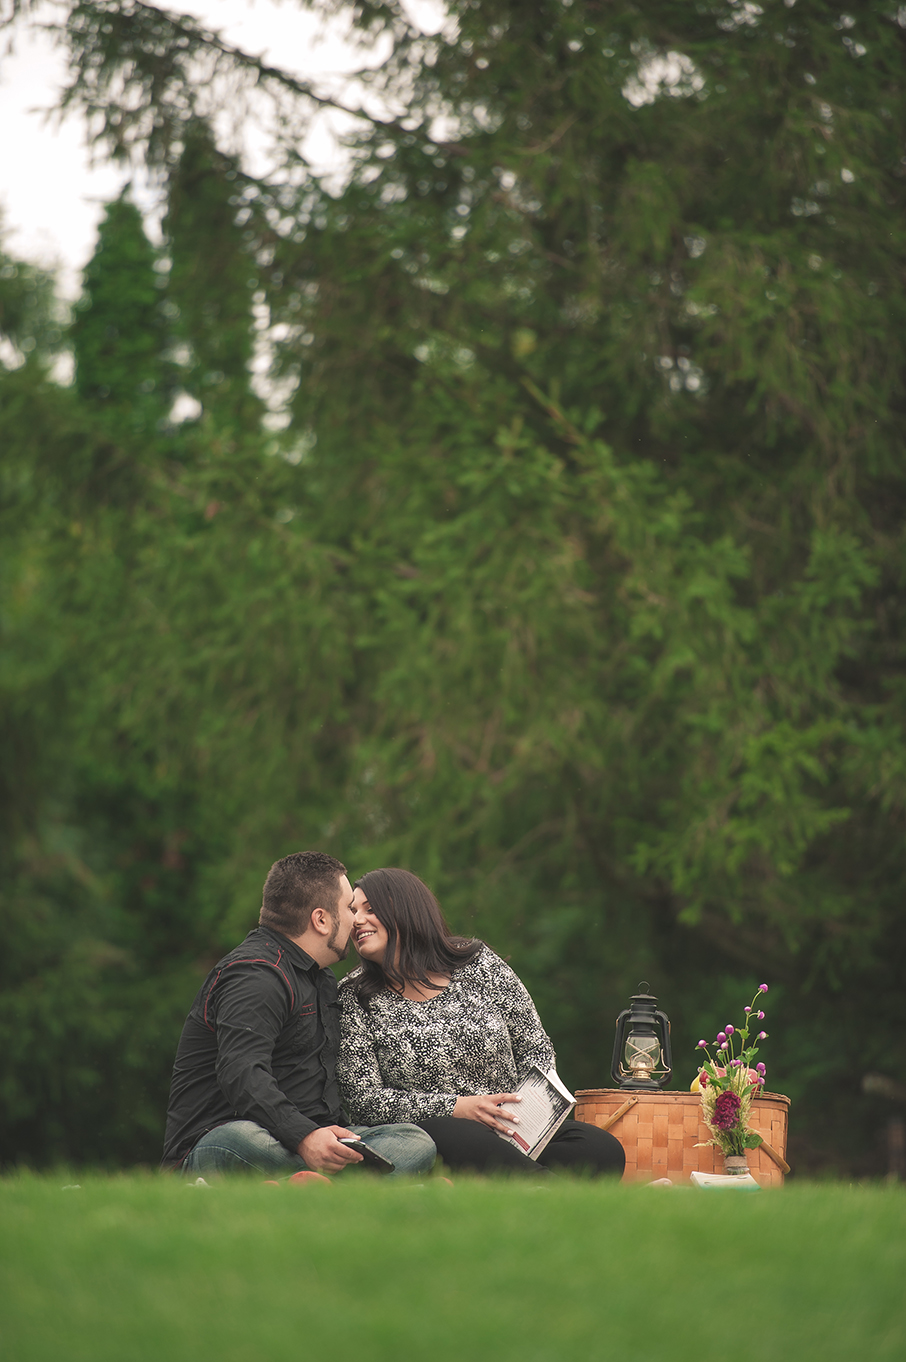 Lea&Antonio_Engagement-23.jpg